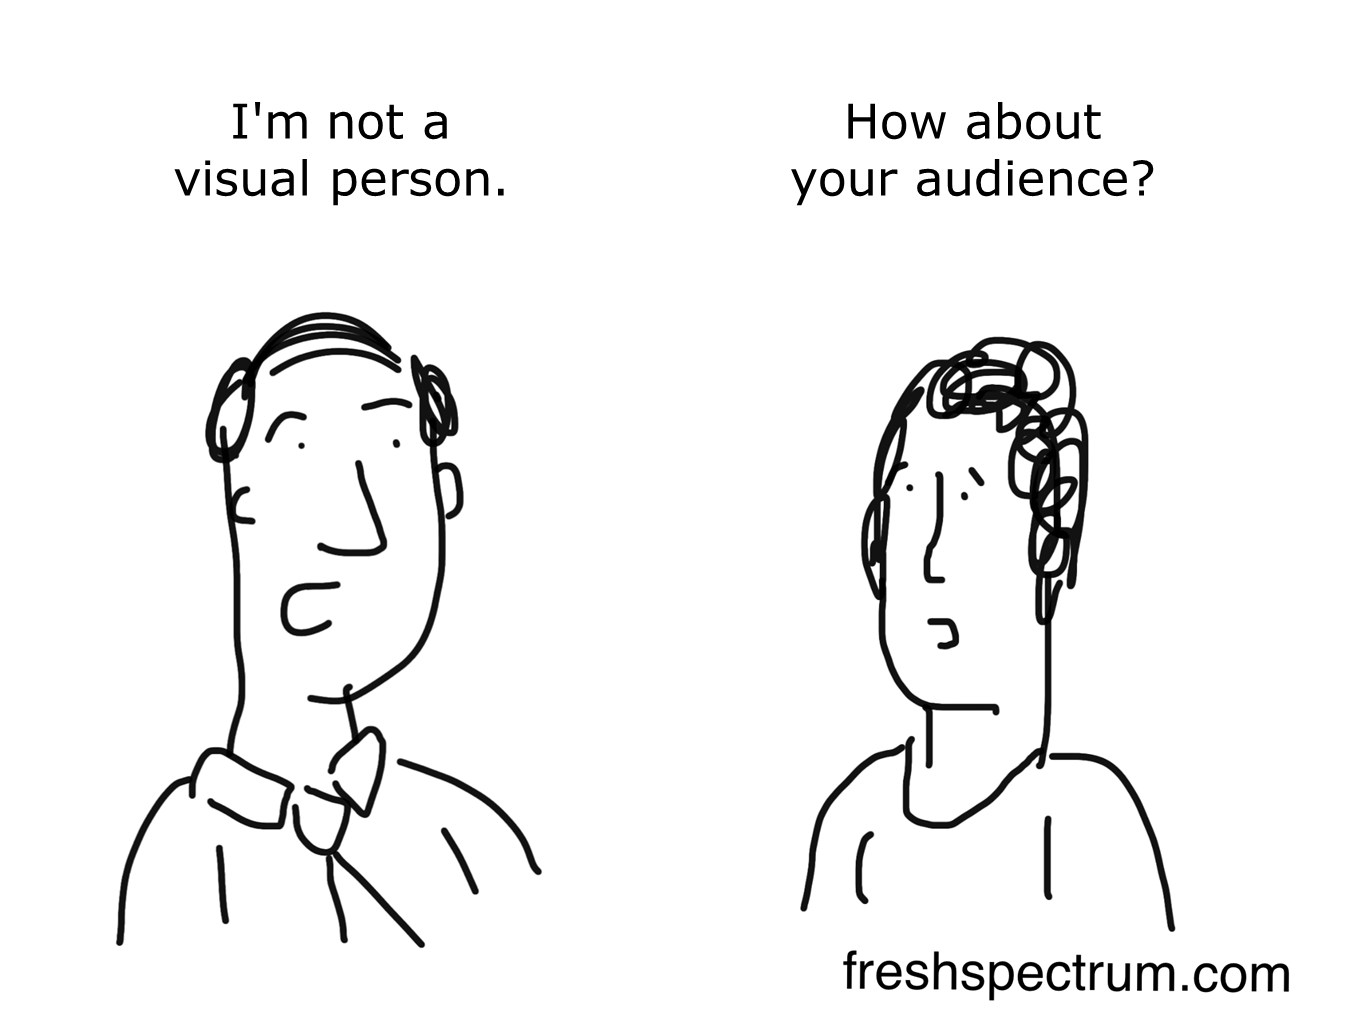 5 new cartoons, who cares if you're not a visual person